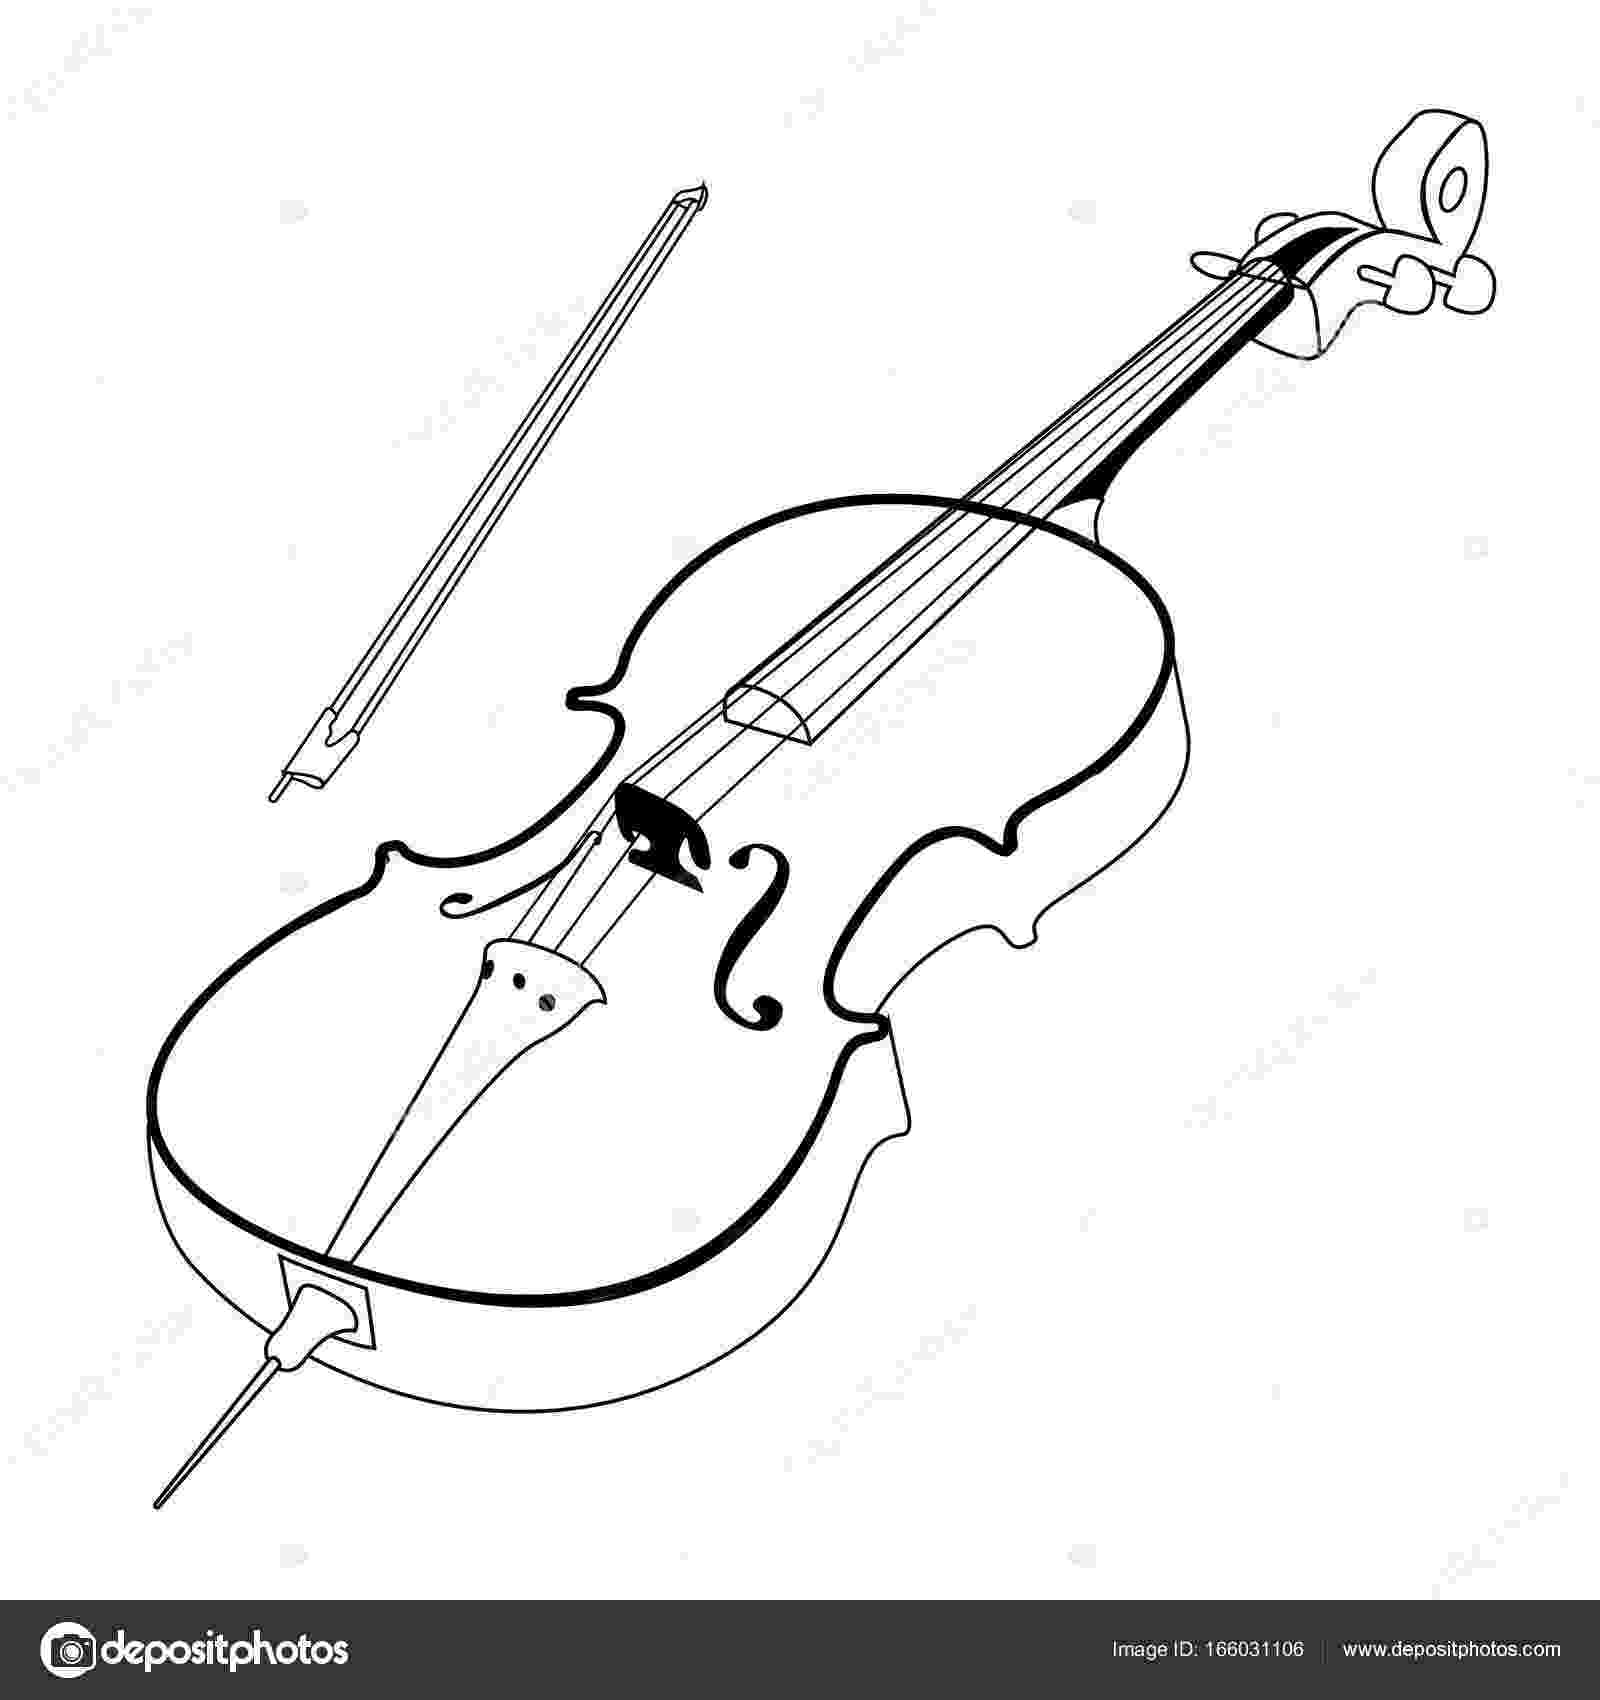 cello coloring page cello coloring pages kidsuki coloring page cello